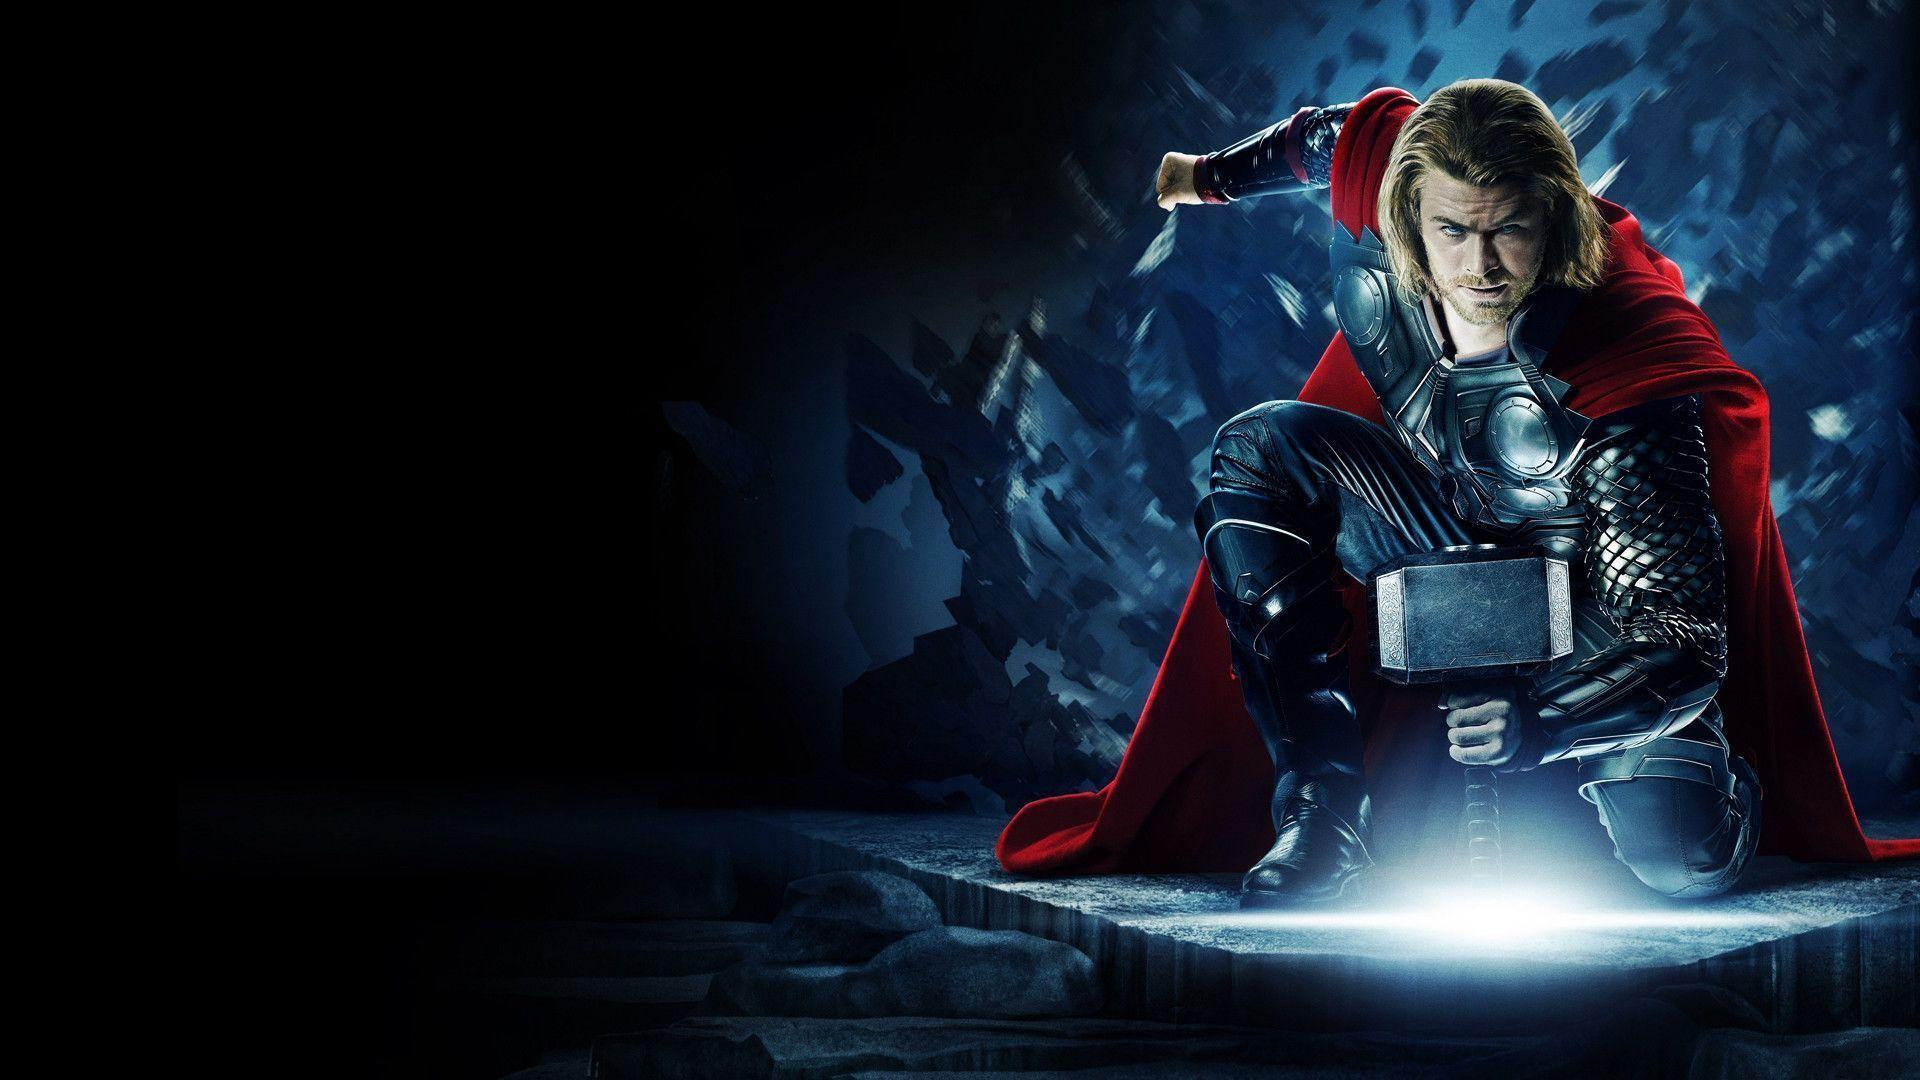 Thor Desktop Wallpapers - Top Free Thor Desktop Backgrounds ...